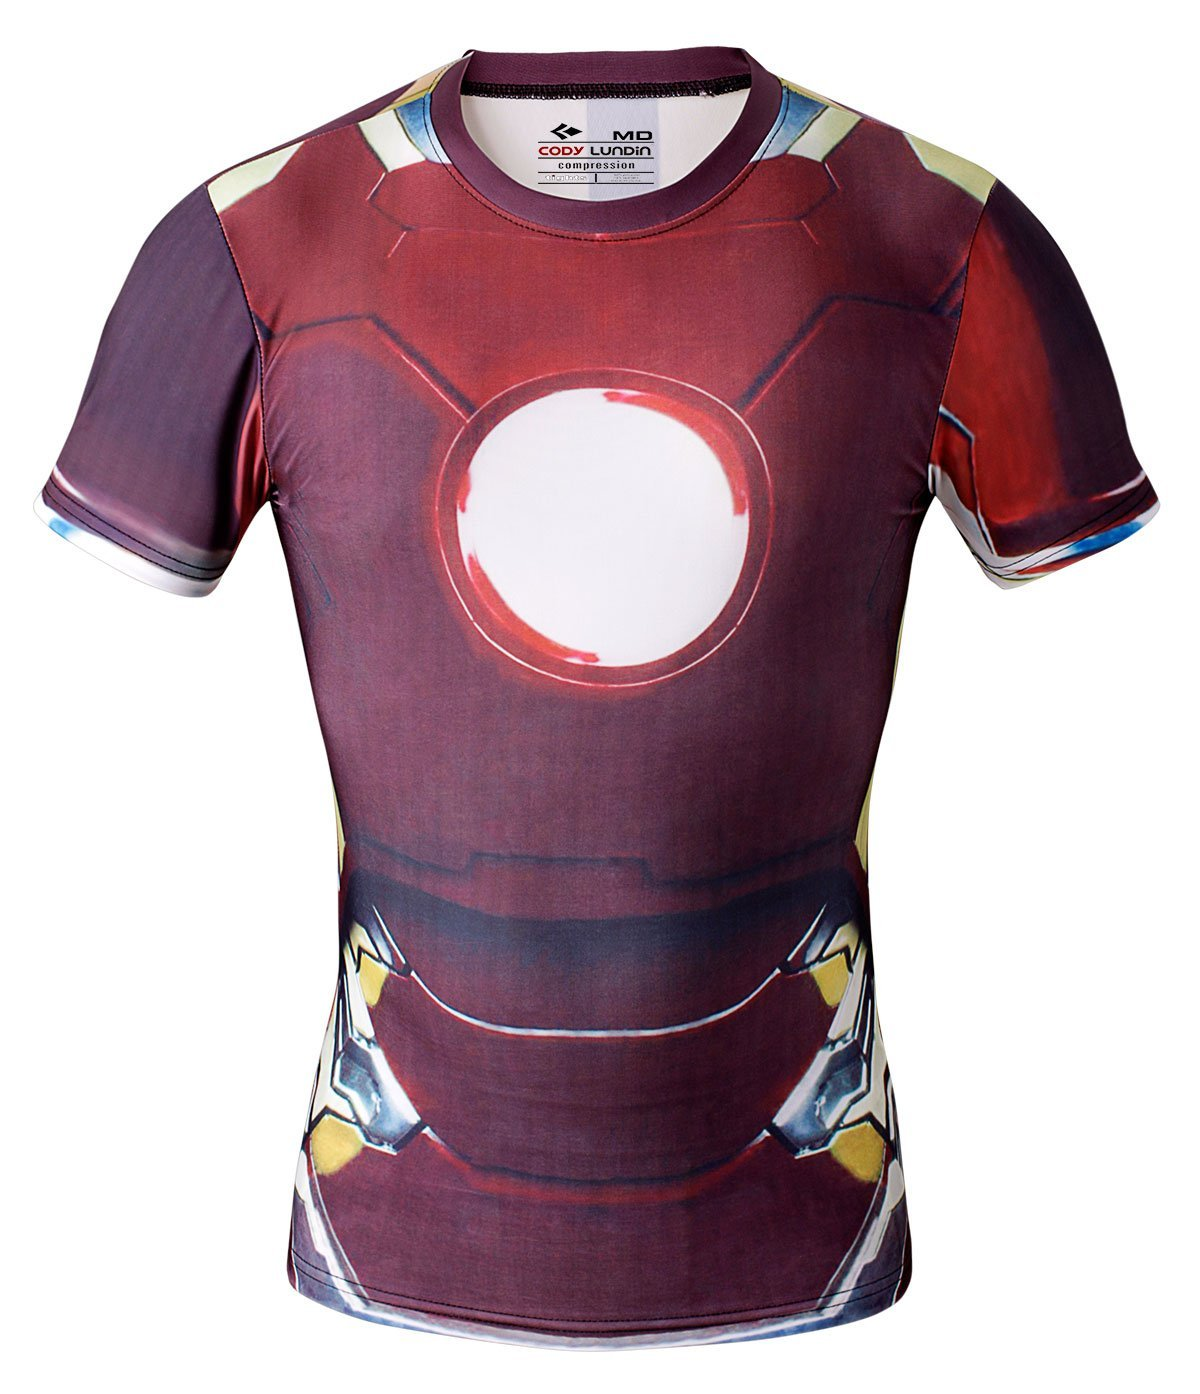 Red Plume Men's Compression Sports Fitness Shirt Armor , Men Iron Man T-shirt(China (Mainland))